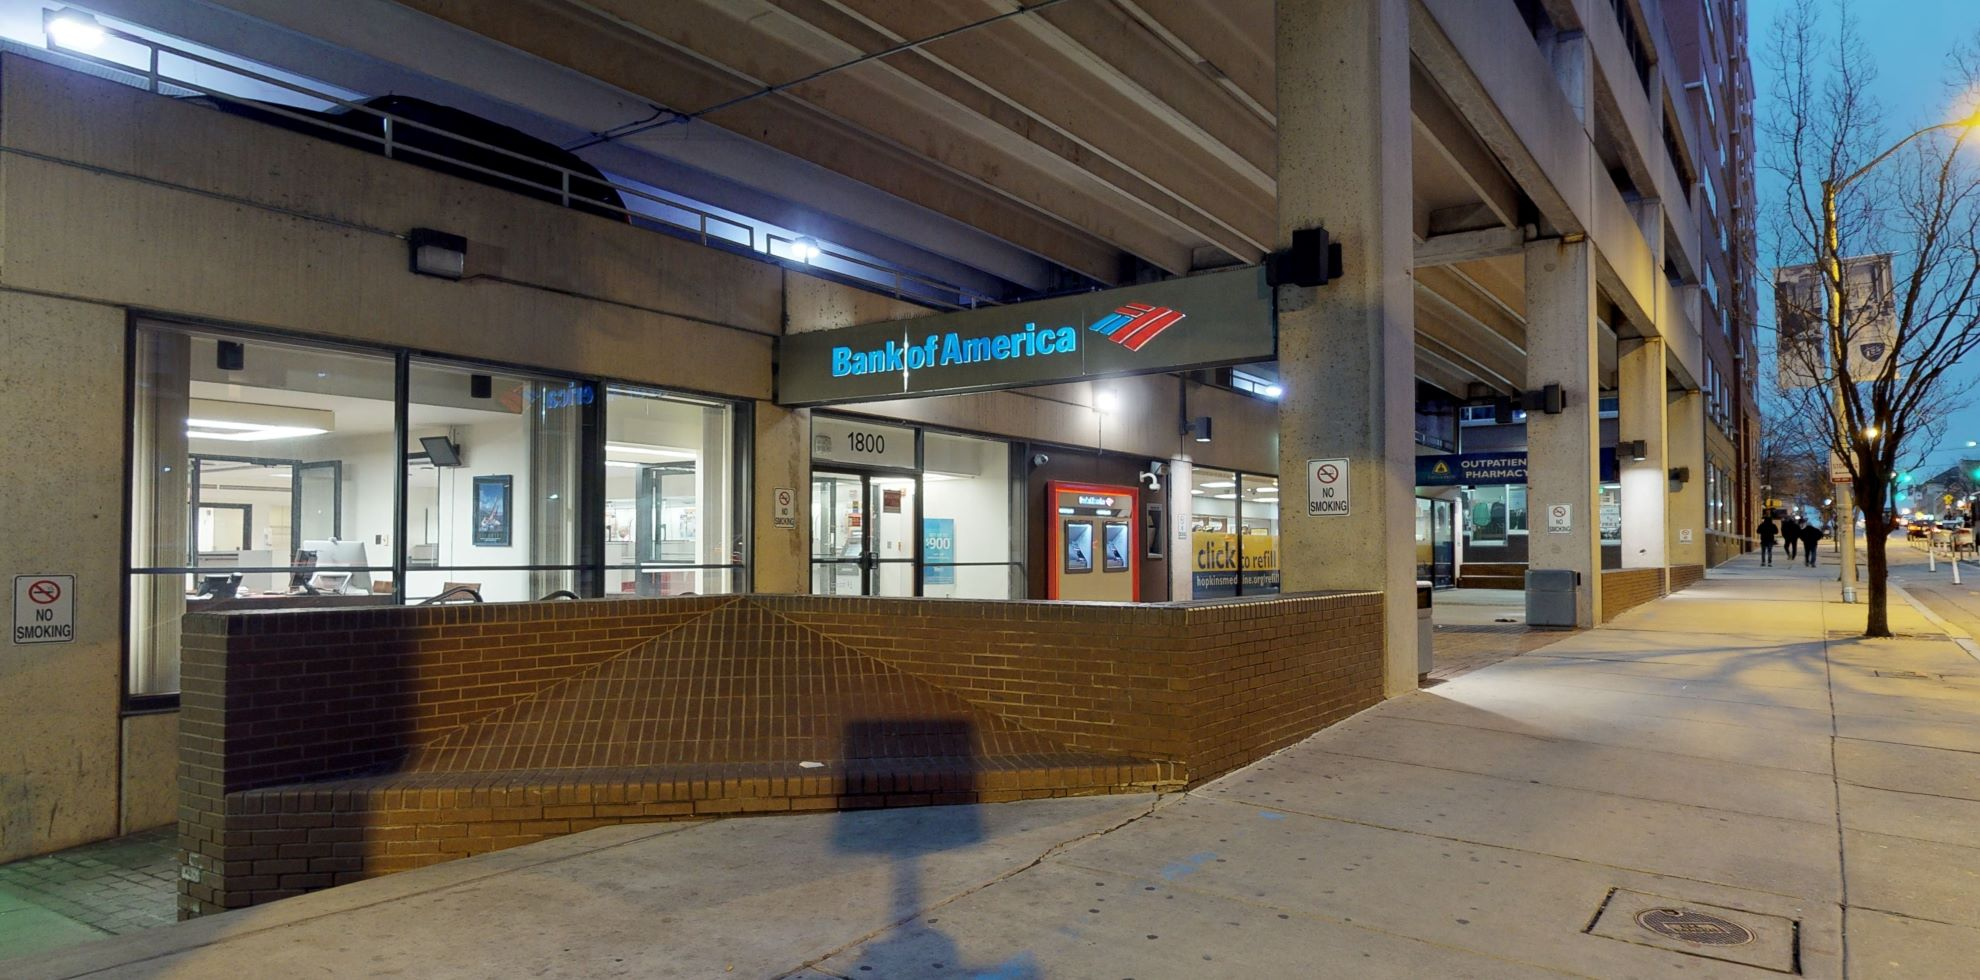 Bank of America financial center with walk-up ATM | 1800 E Monument St, Baltimore, MD 21205